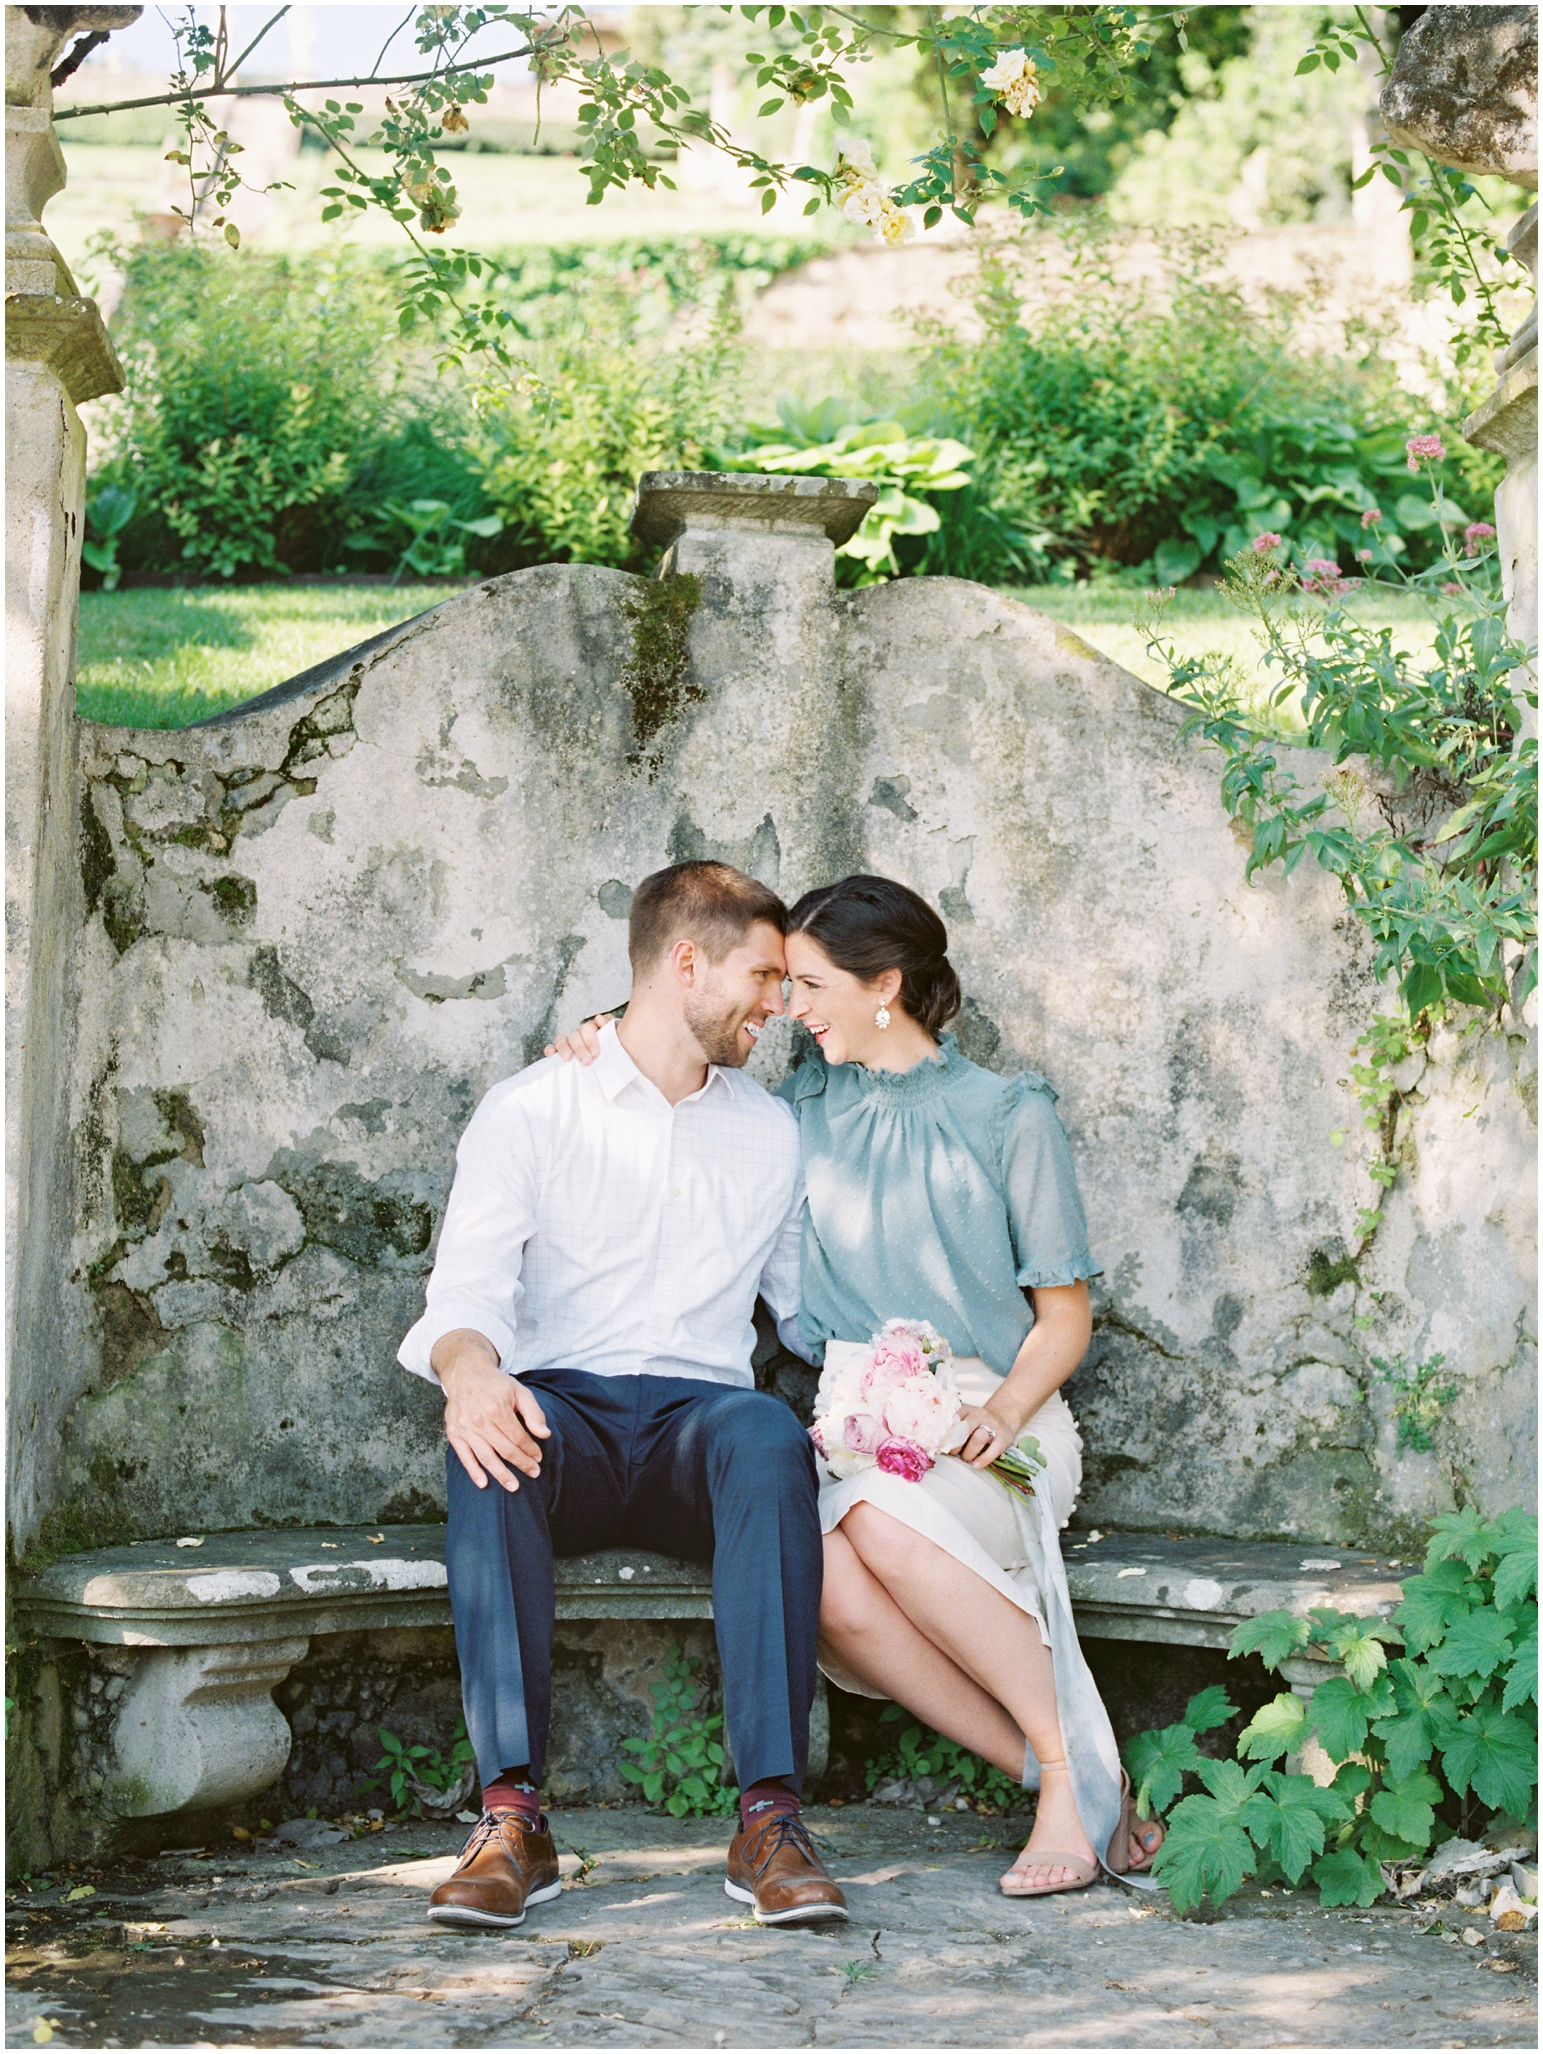 Lisa Silva Photography- Jacksonville, St. Augustine, Amelia Island, Ponte Vedra Beach, Fernandina Beach, North East Florida Fine Art Film Photographer- Engagement Session in Florence, Italy_0048.jpg